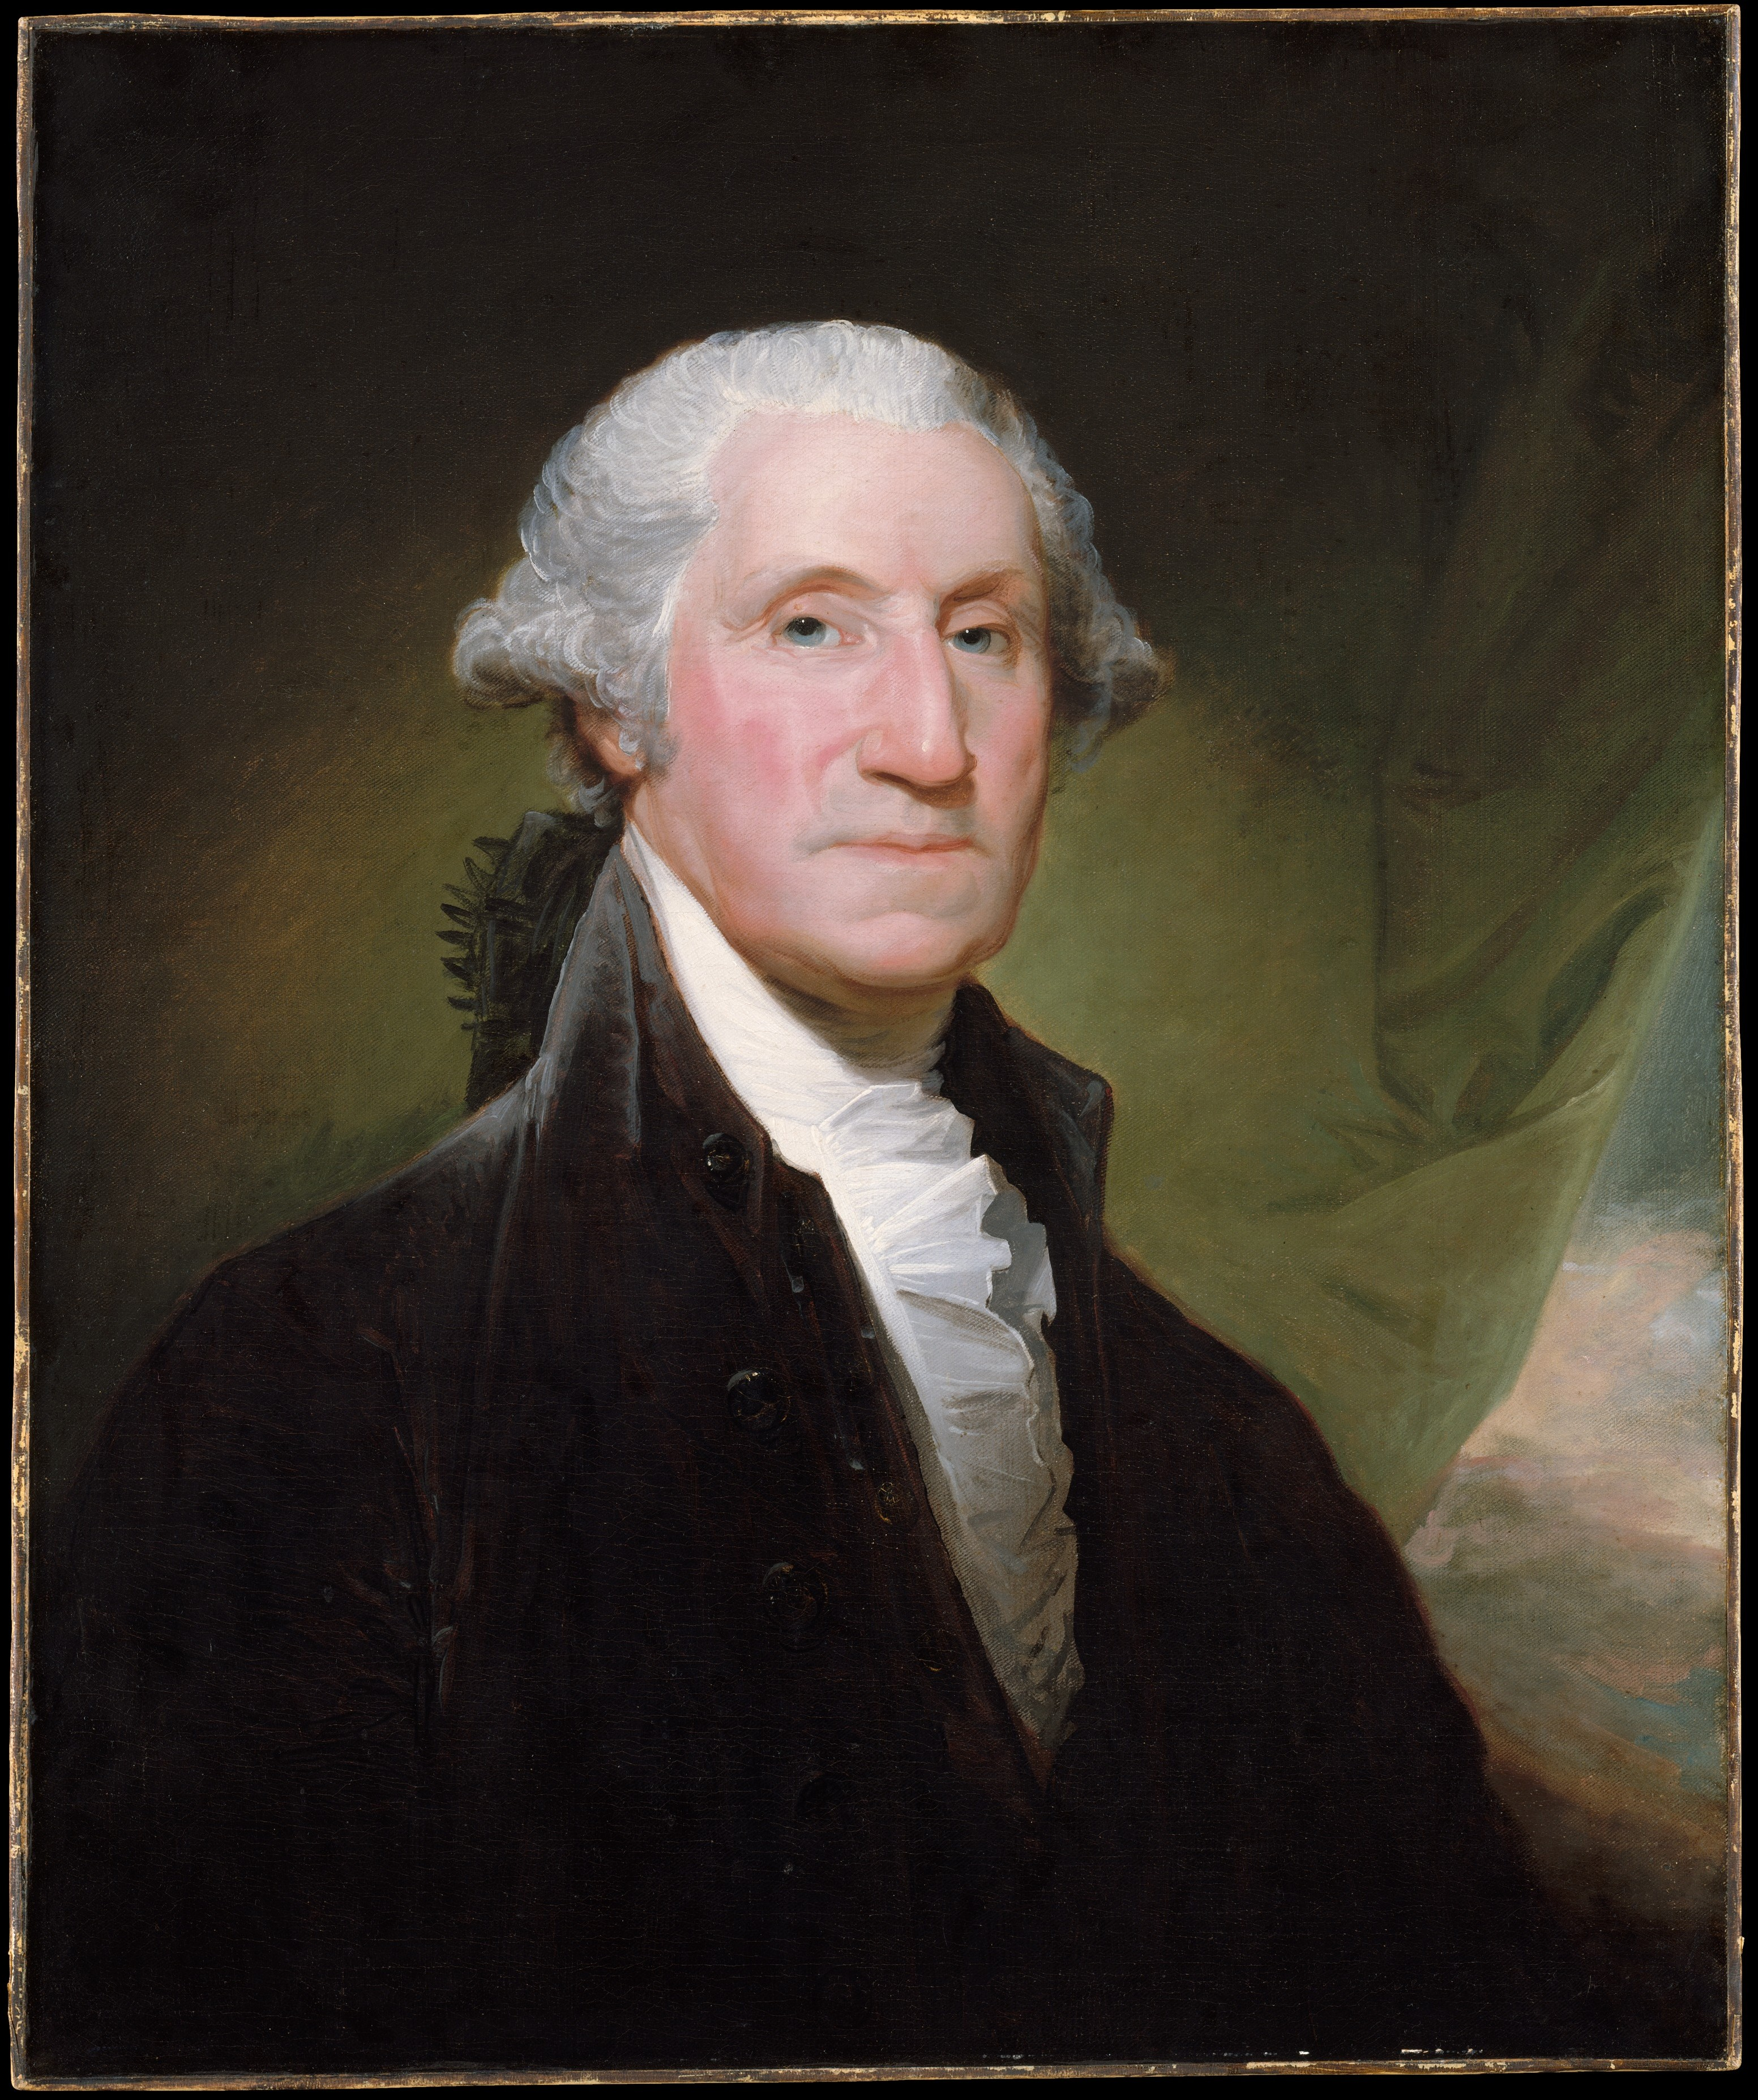 George Washington's mastery of the cravat was total.